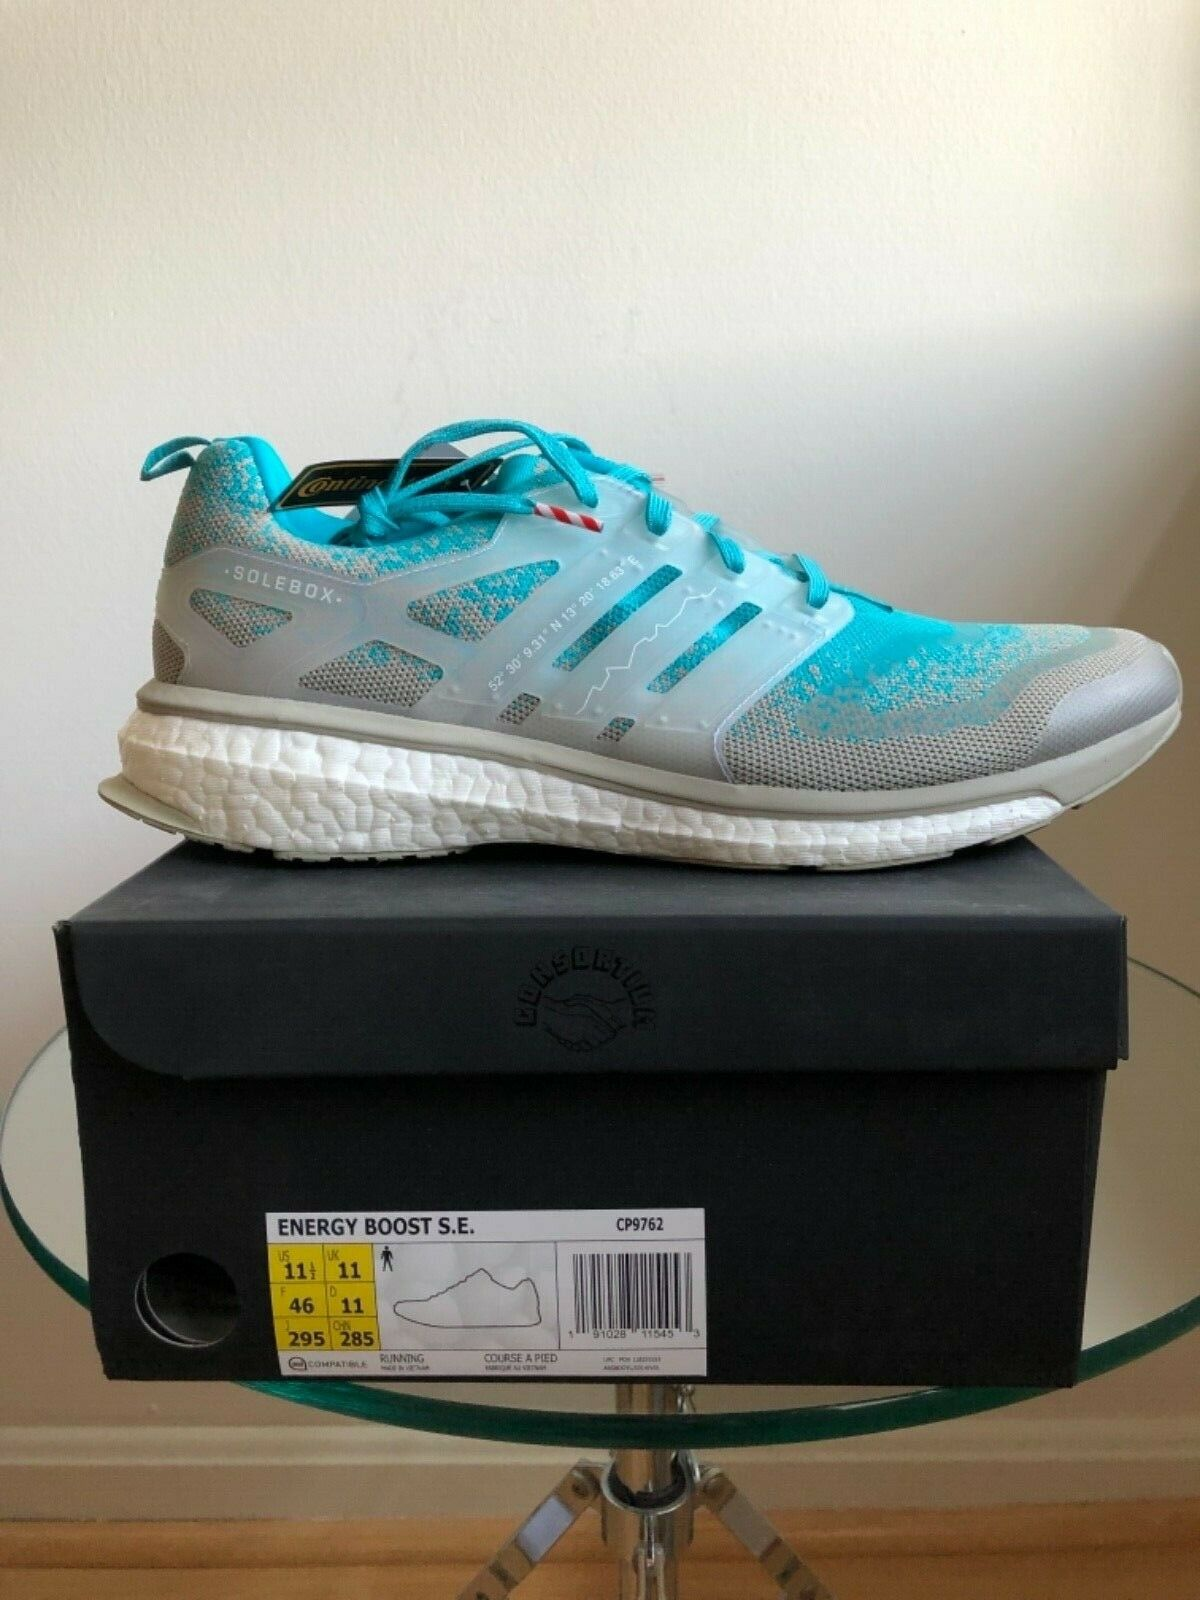 ADIDAS ENERGY BOOST S.E. PACKER SOLEBOX gris Azul CP9762